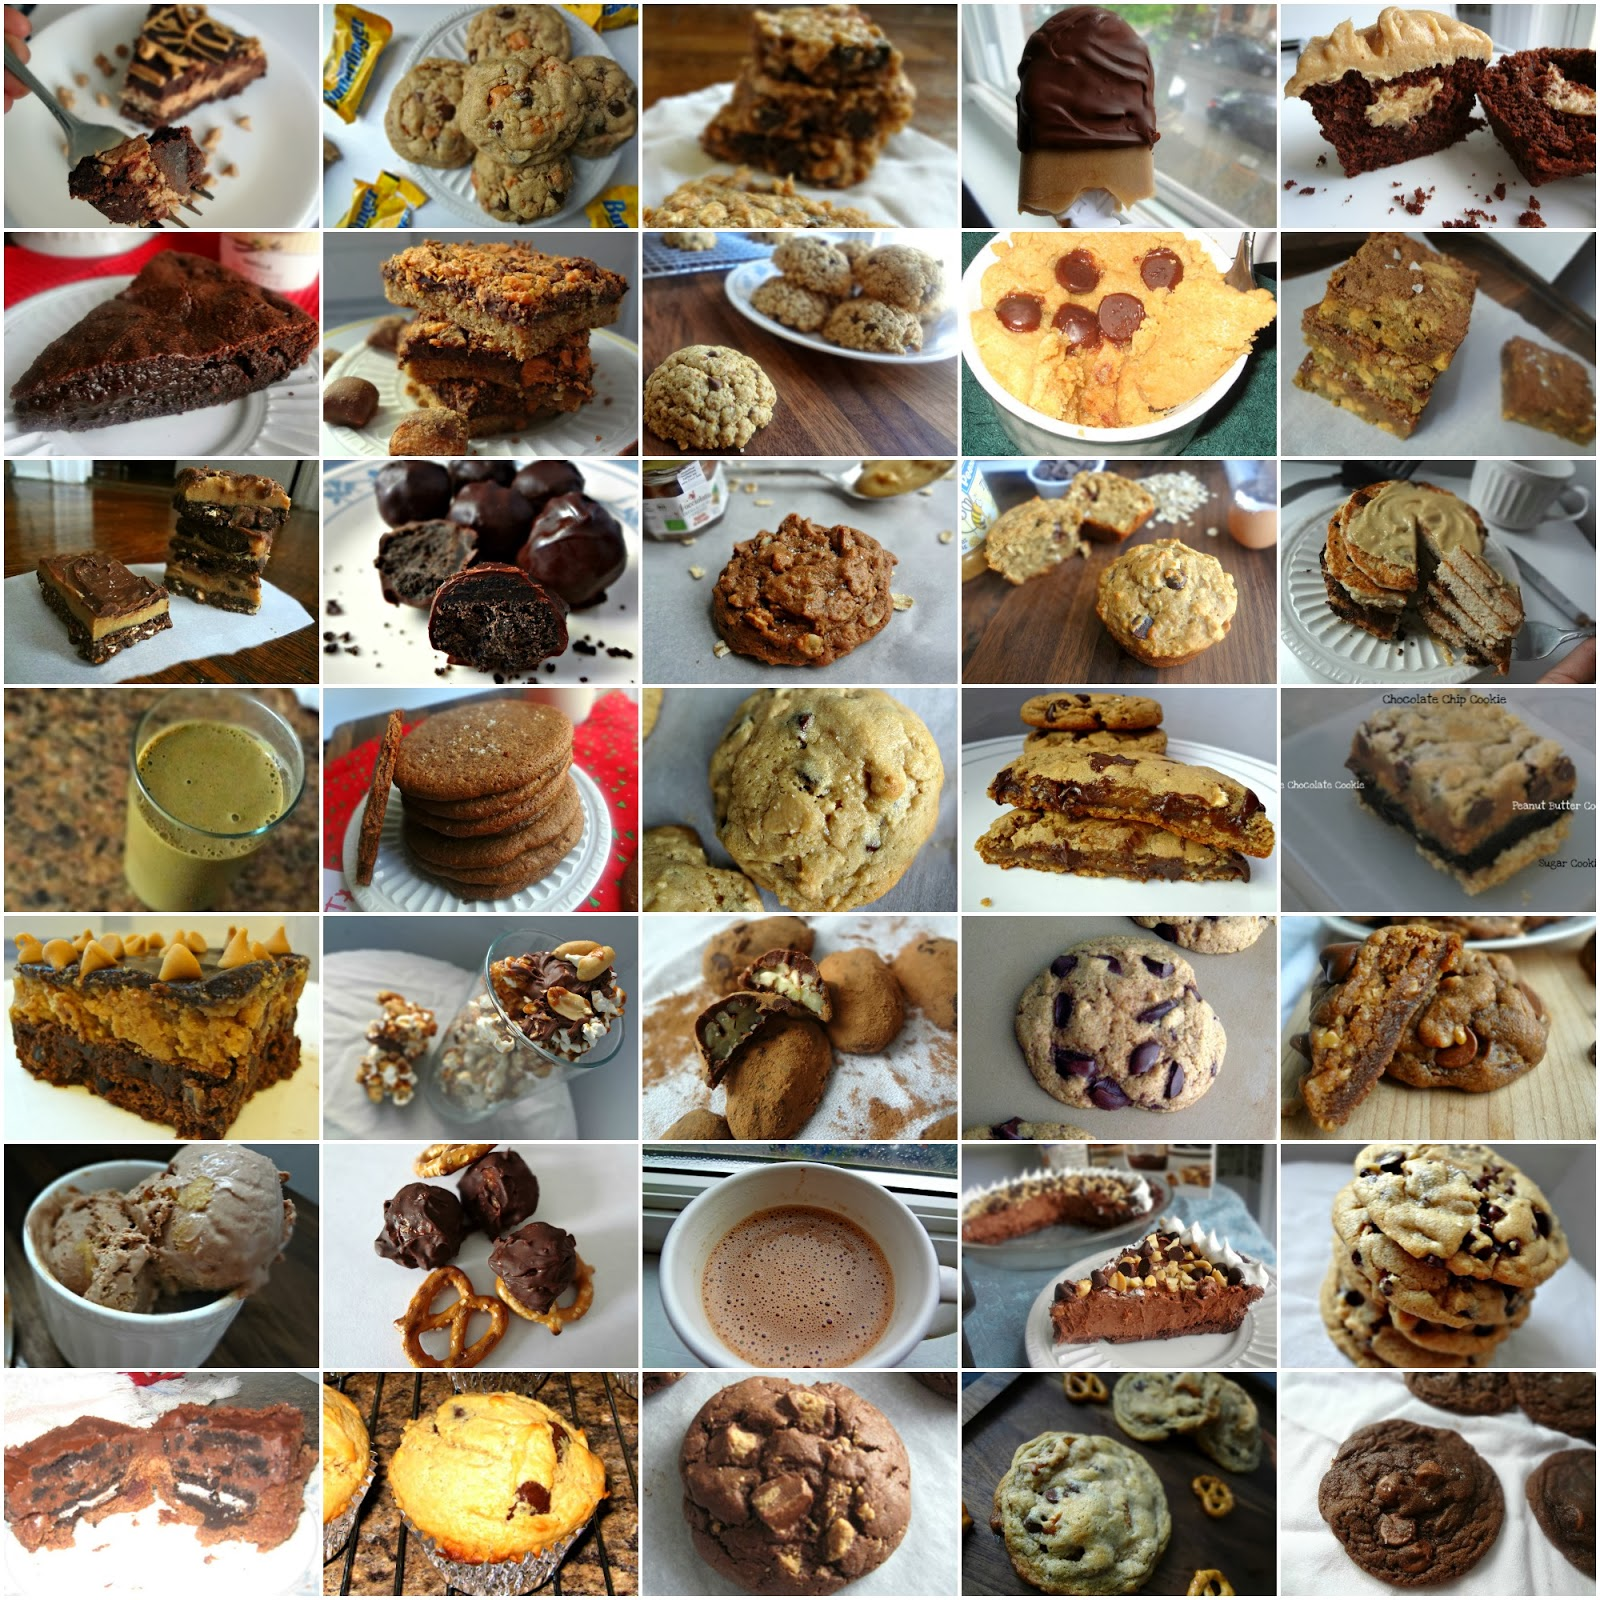 35 Chocolate Peanut Butter Recipes